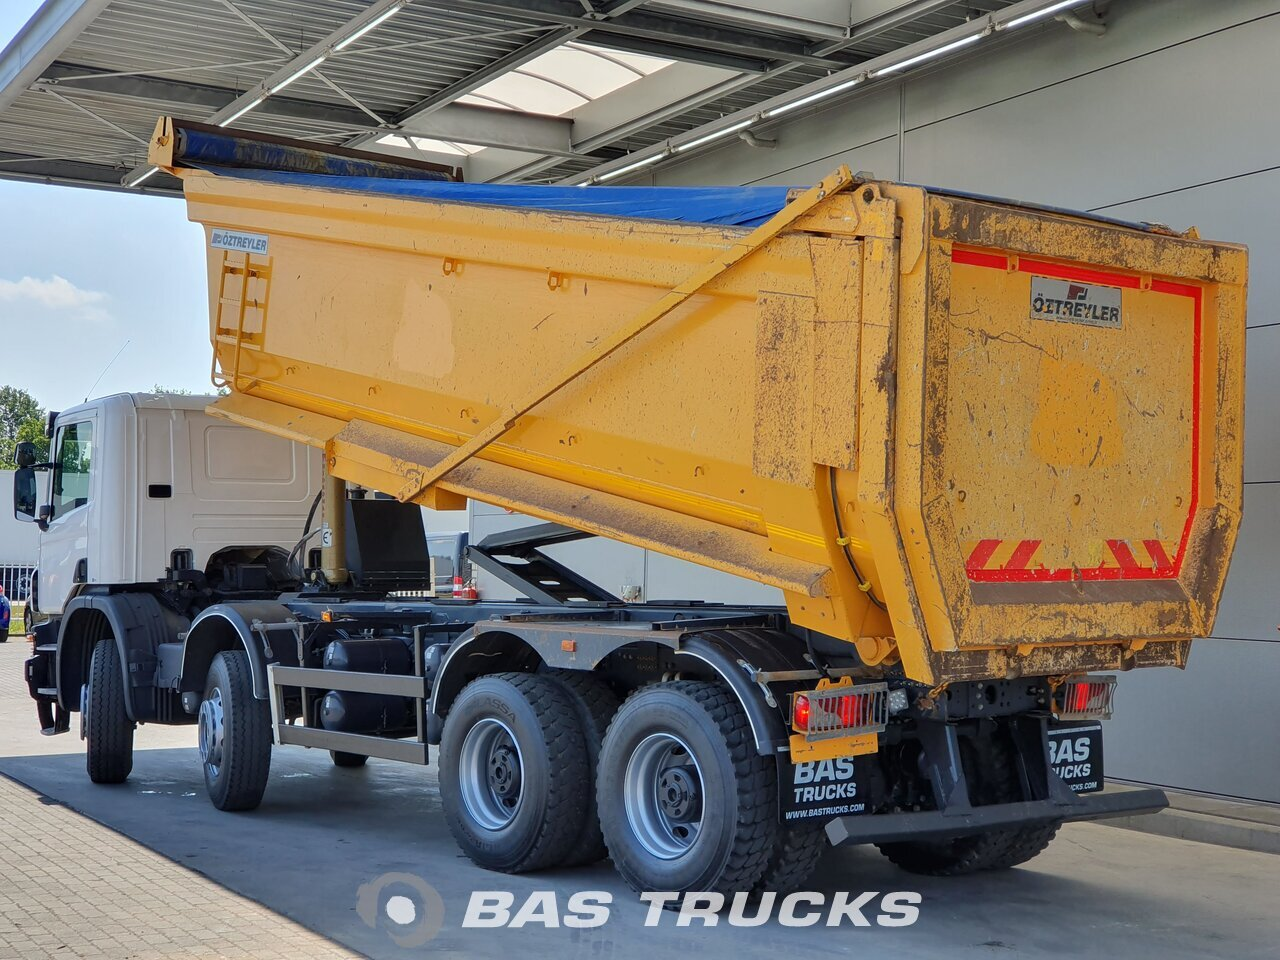 For sale at BAS Trucks: Scania P400 8X4 11/2016